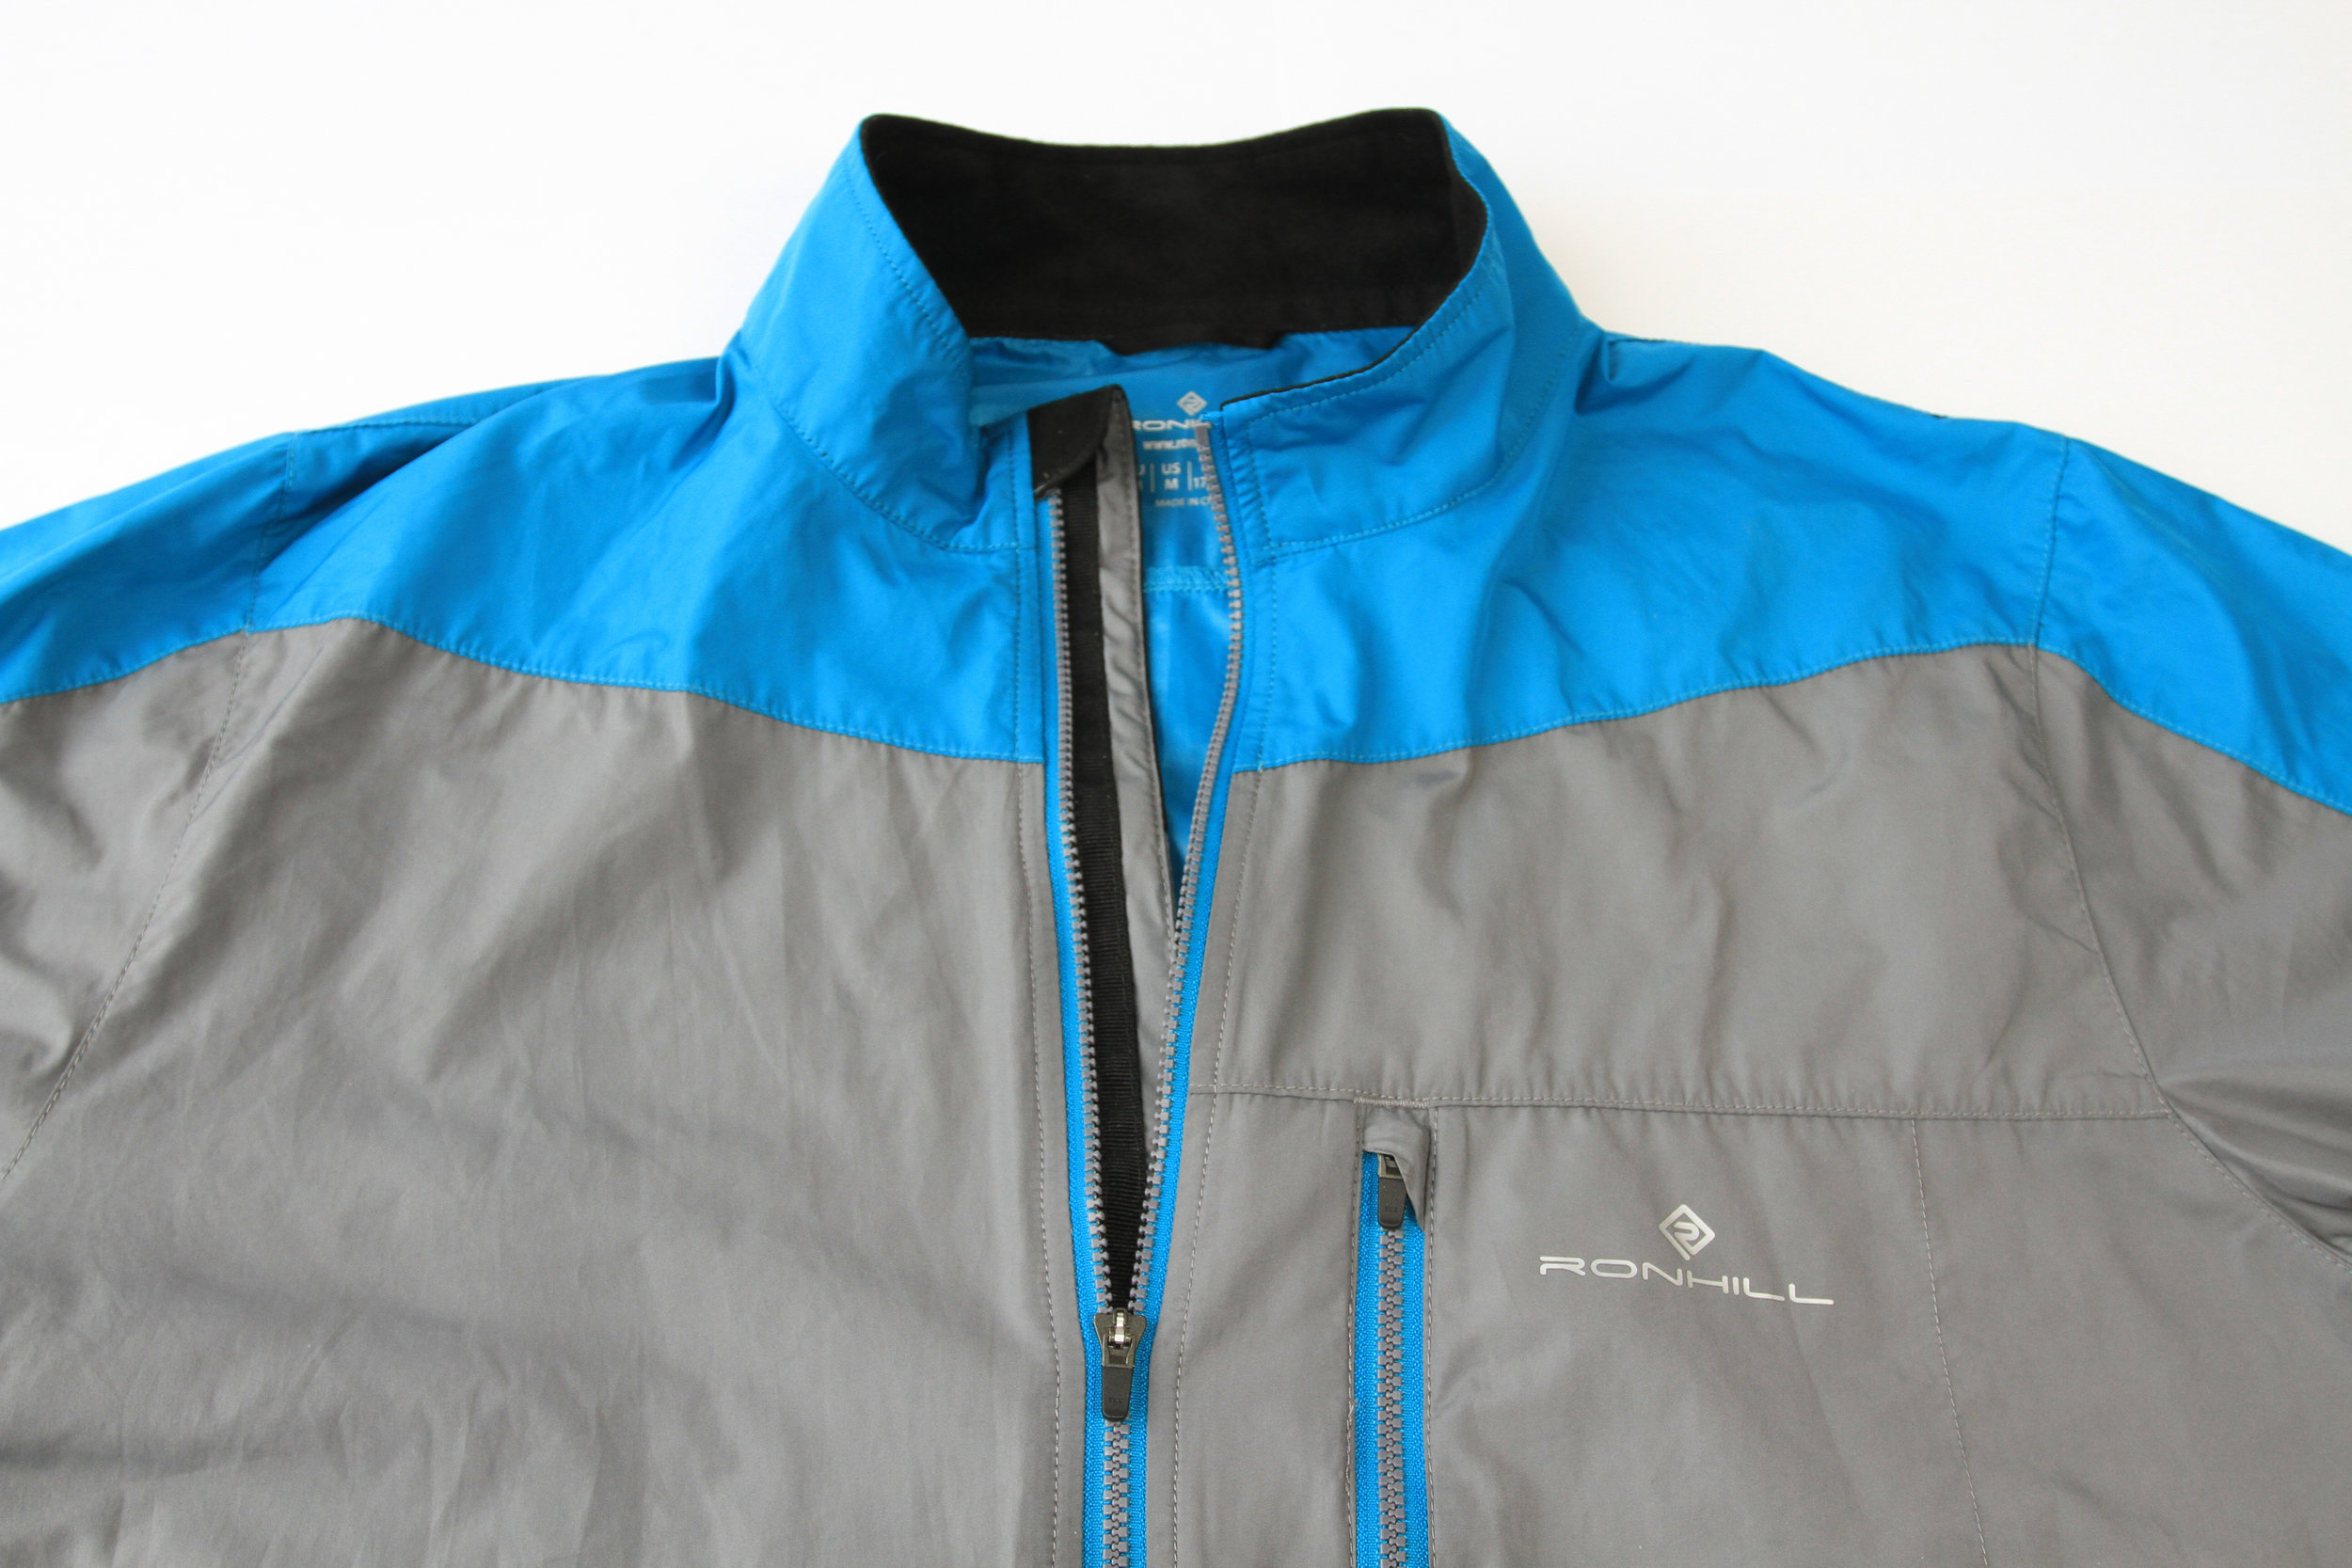 Ronhill newest jacket-10.JPG